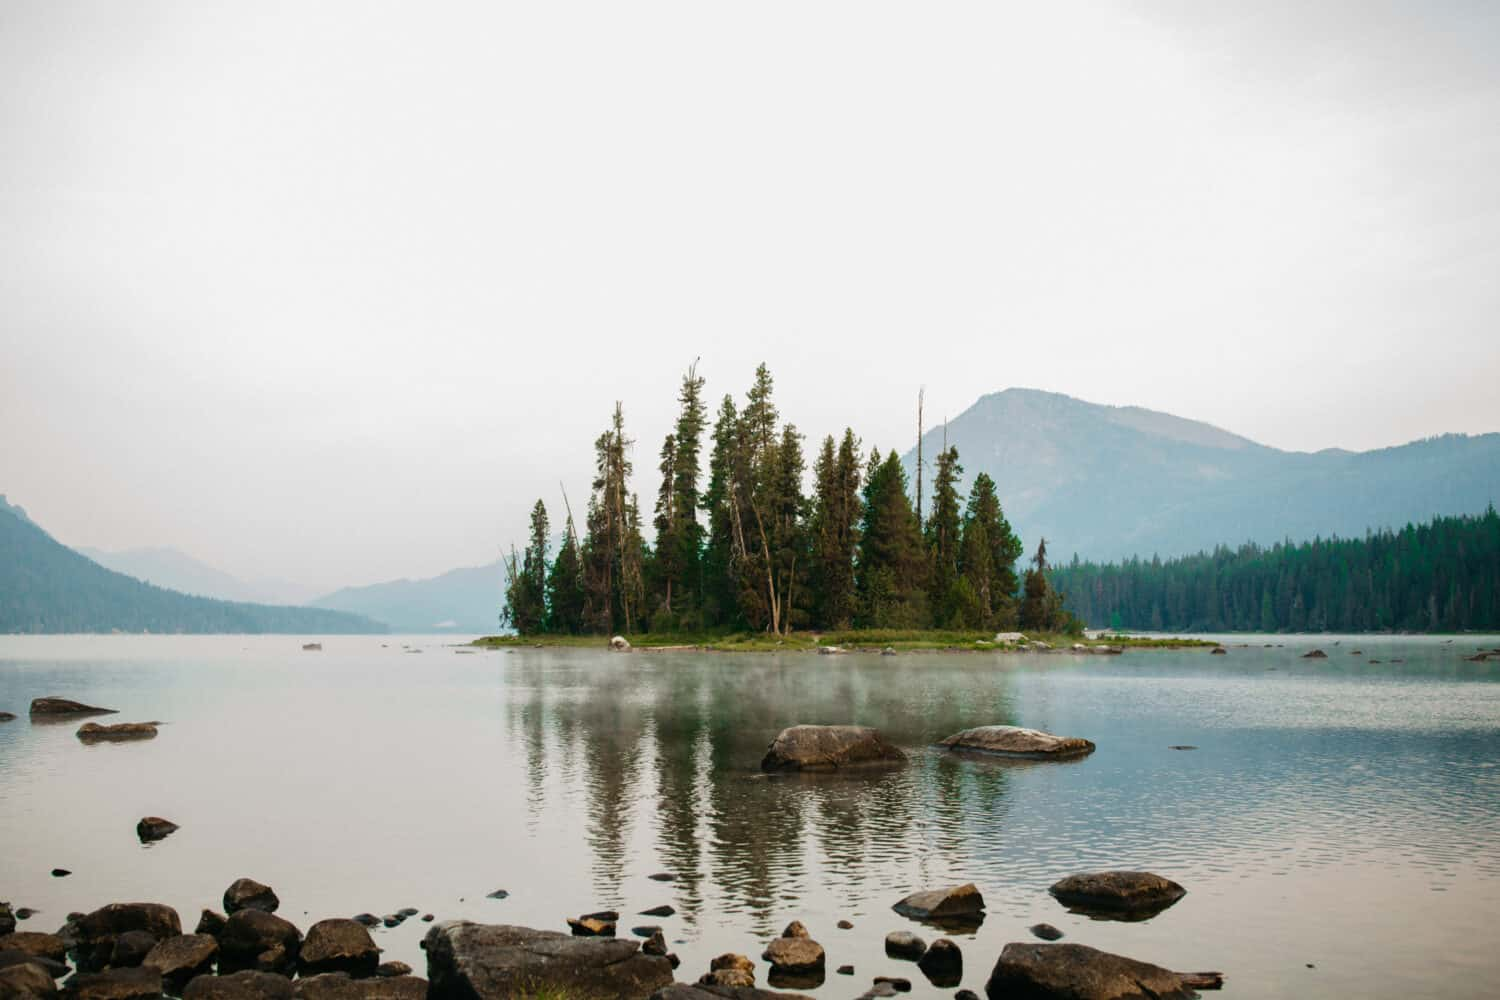 Lake Wenatchee - Places To See In Washington State - TheMandagies.com